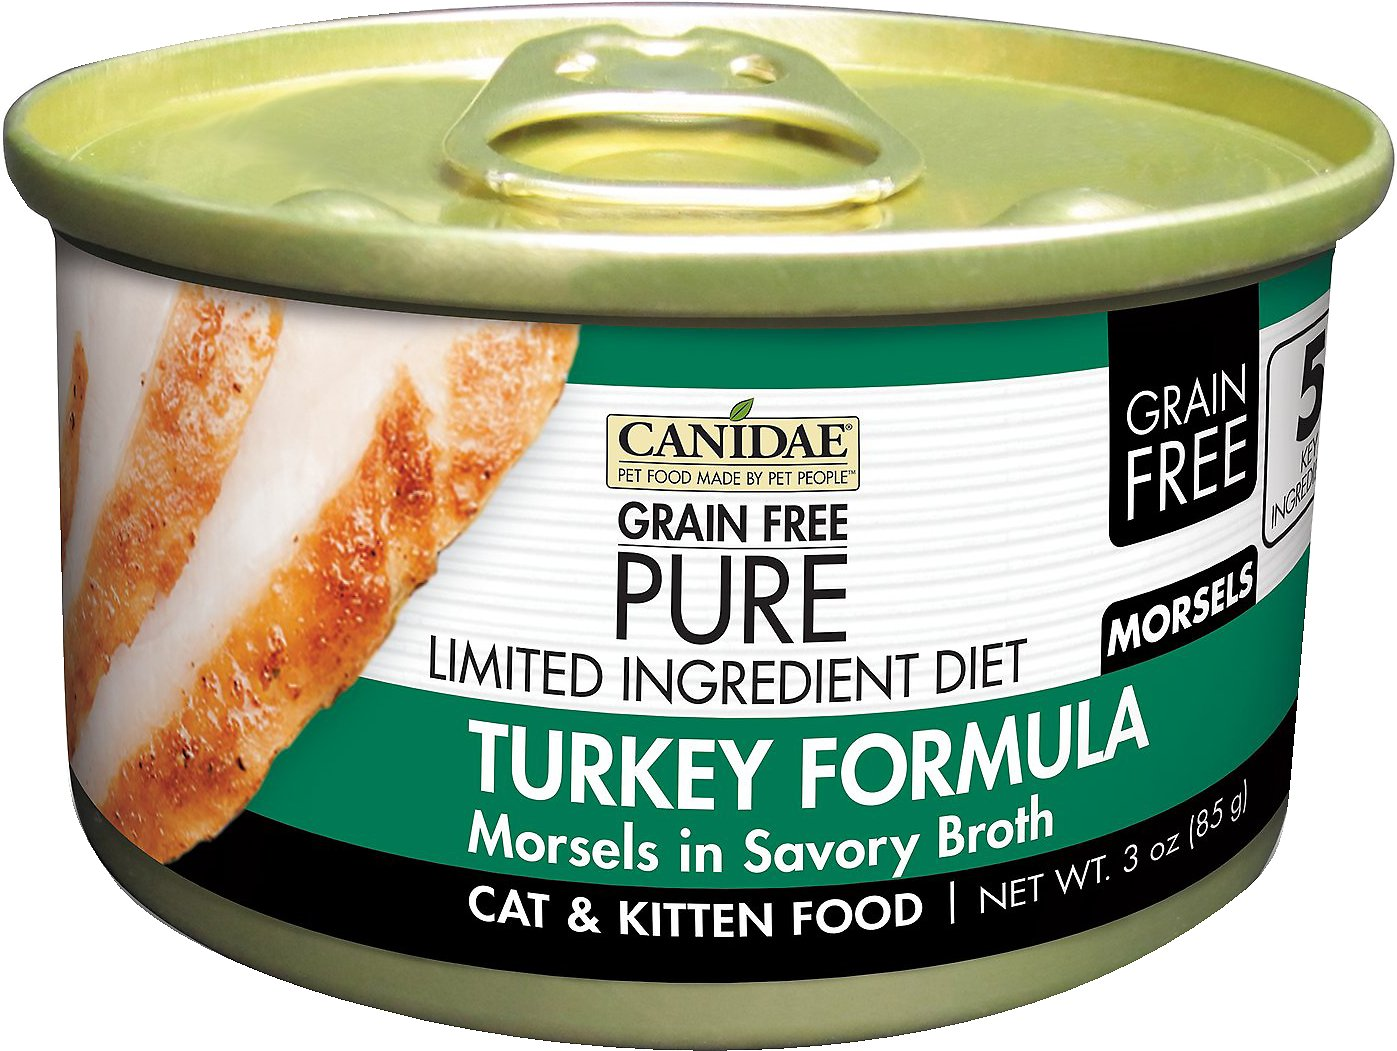 CANIDAE Grain-Free PURE Limited Ingredient Diet Morsels with Turkey Canned Cat Food, 3-oz